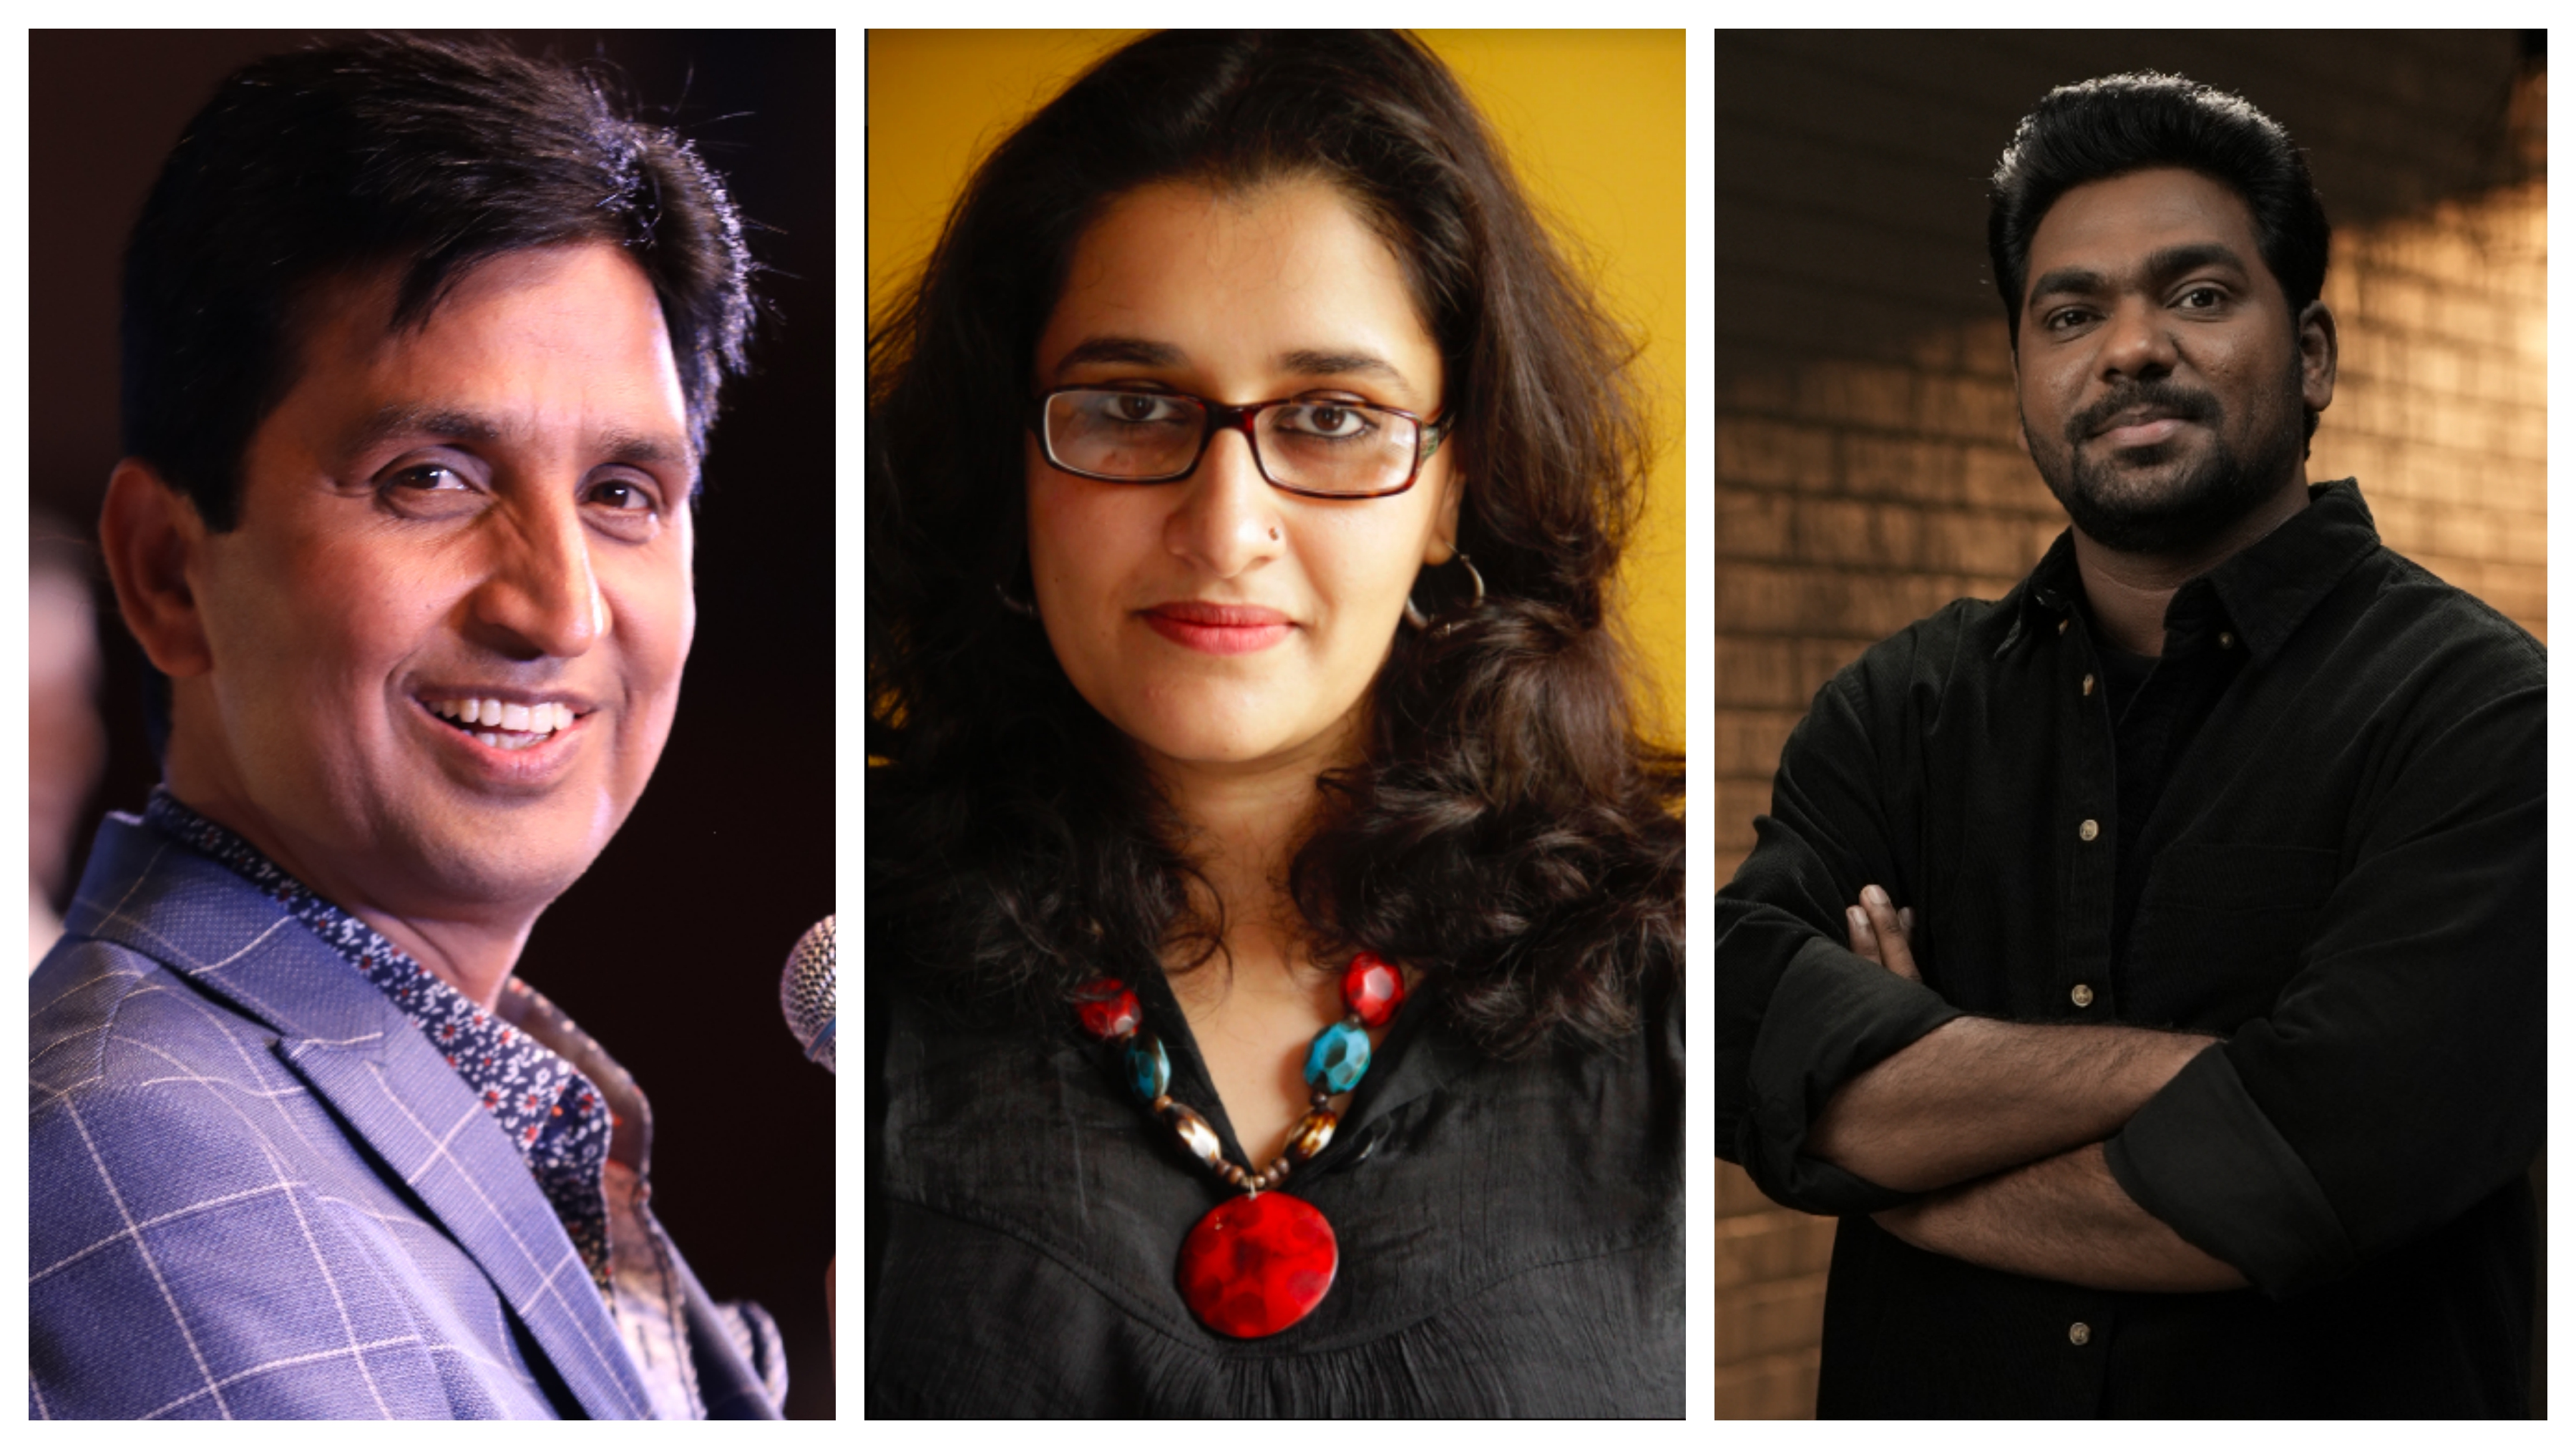 The showcase will also bring together prominent poets like Dr Kumar Vishwas, Kausar Munir and Zakir Khan.